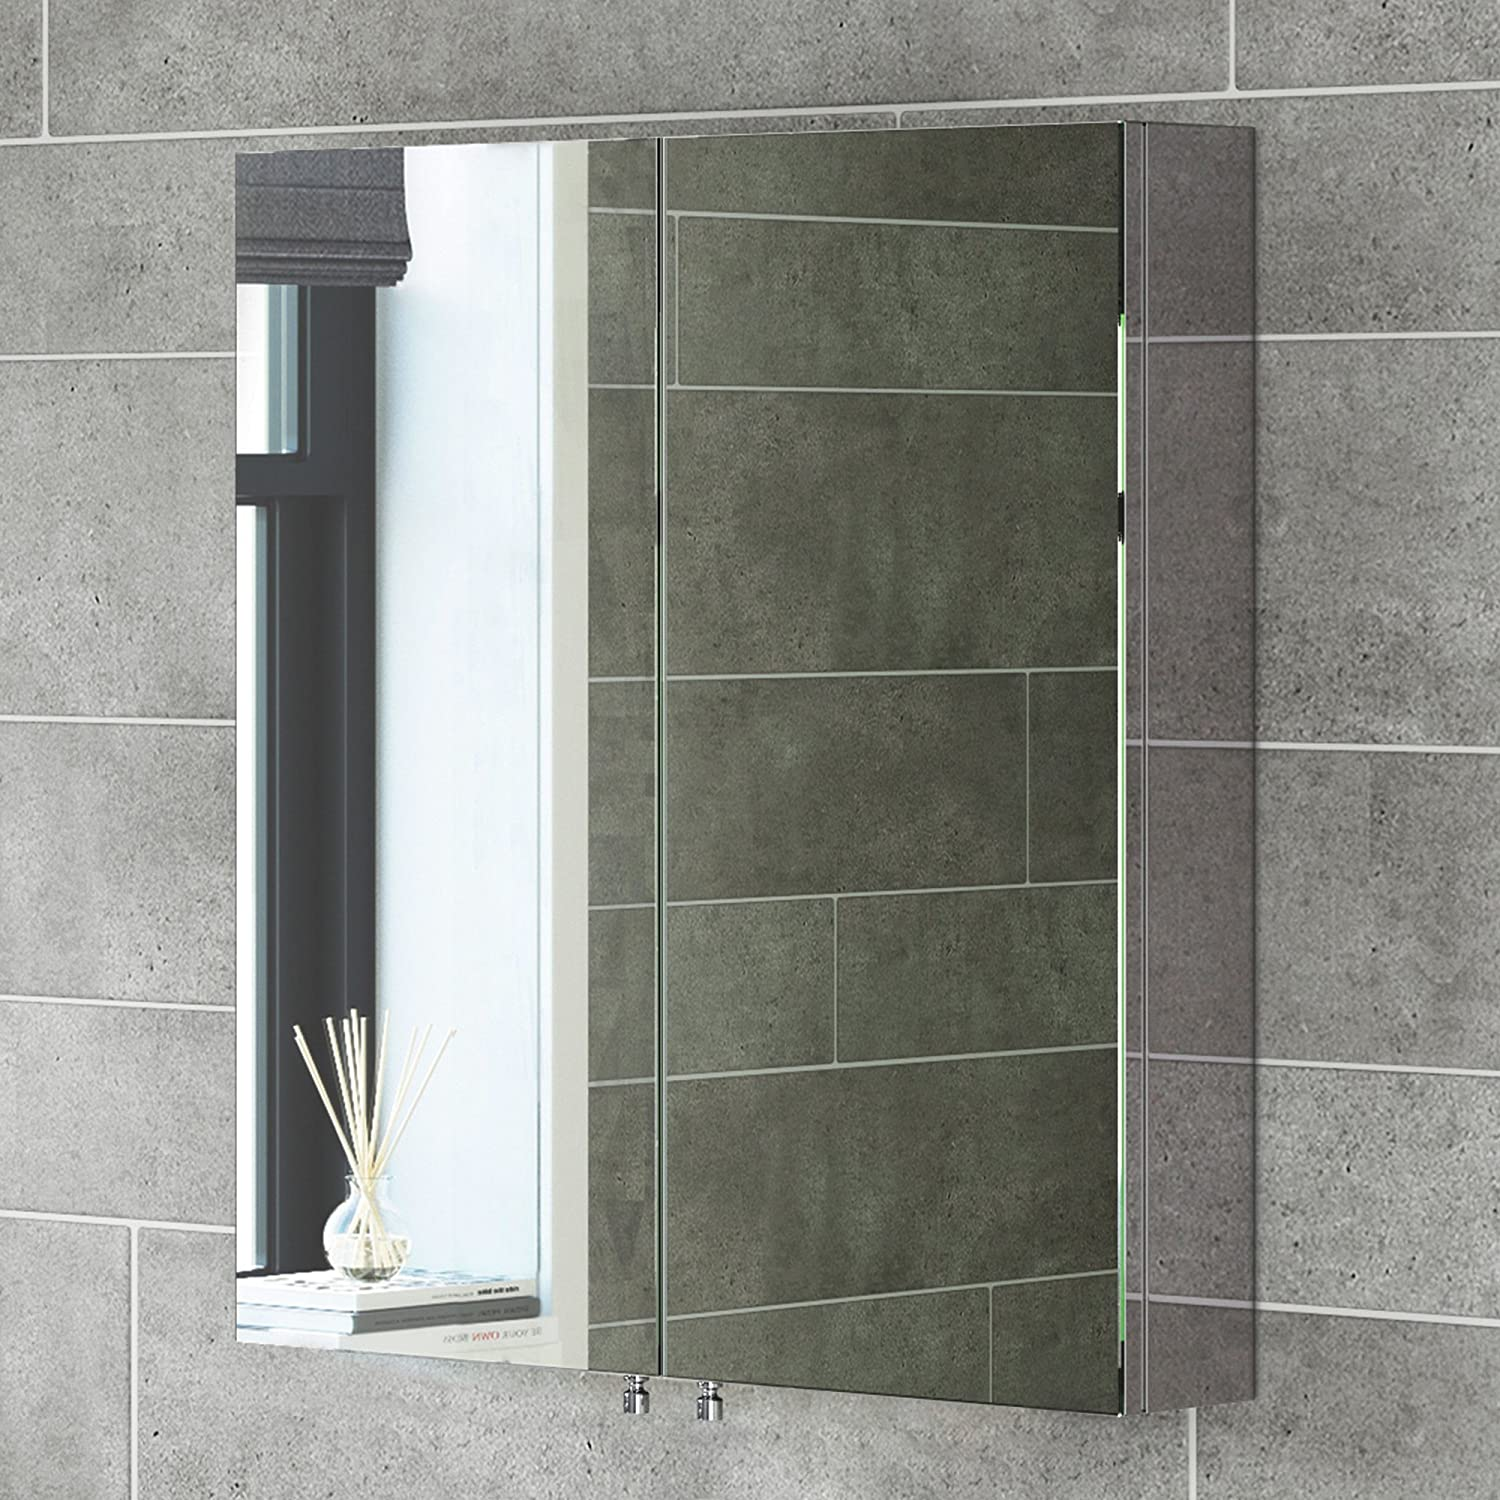 670 X 600 Stainless Steel Bathroom Mirror Cabinet Modern Double Door Storage  Unit